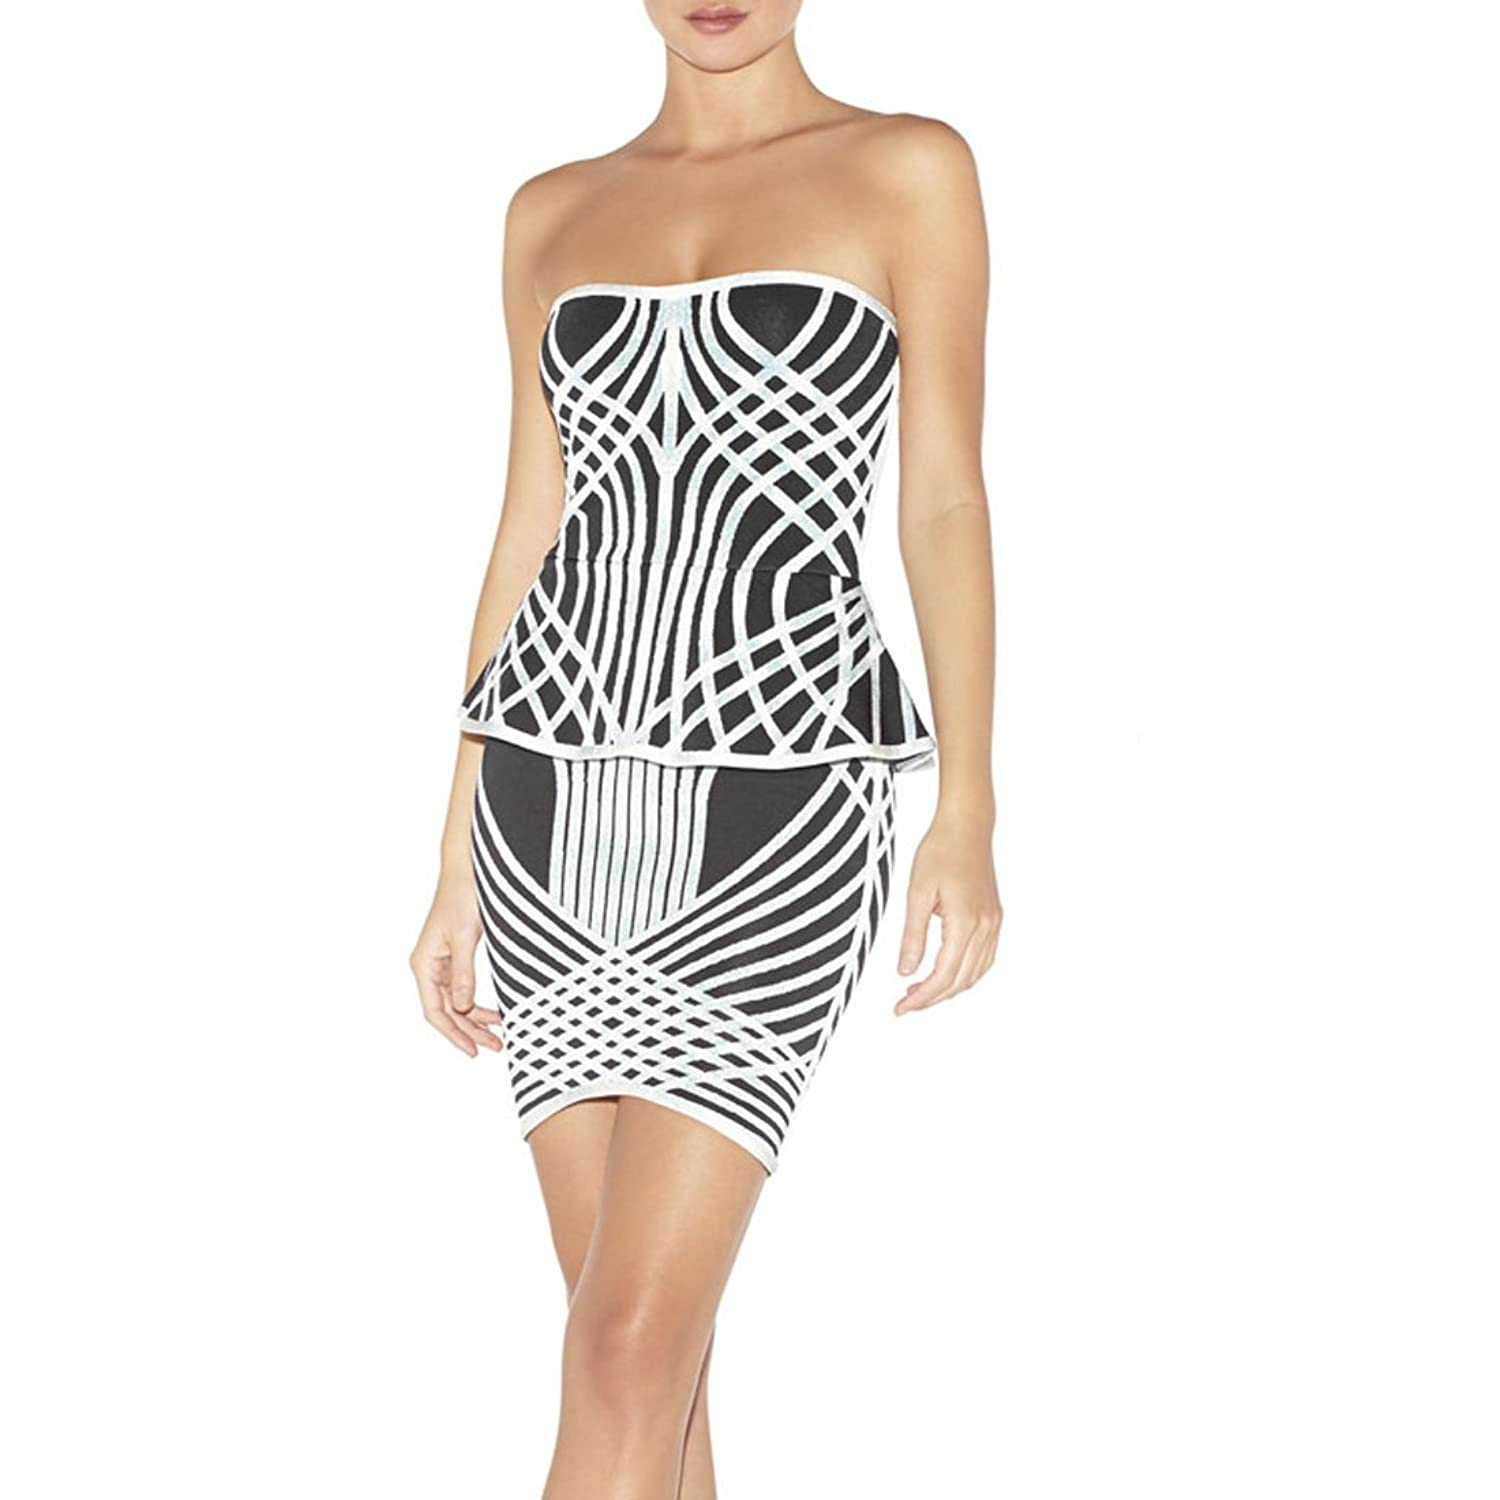 Hlbcbg Rayon Women's Bandage Bodycon Dress Cocktail Party Dress 2191